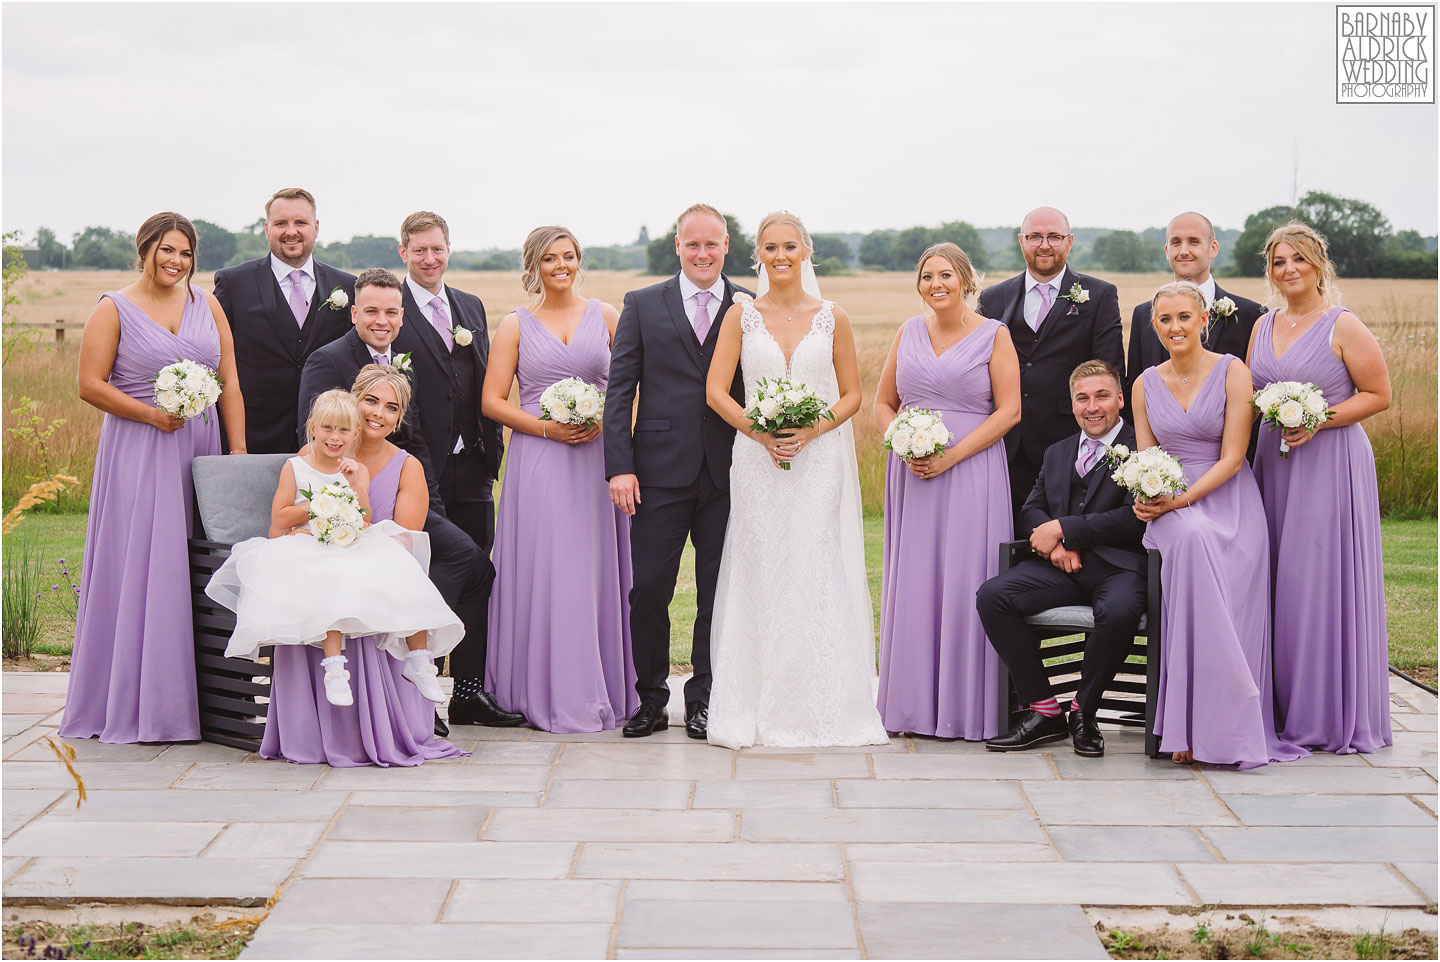 Wedding party group photo at The Oakwood, Yorkshire Wedding at The Oakwood at Ryther, Oakwood at Ryther wedding photographs, The Oakwood at Ryther wedding photos, Stylish Yorkshire wedding barn venue